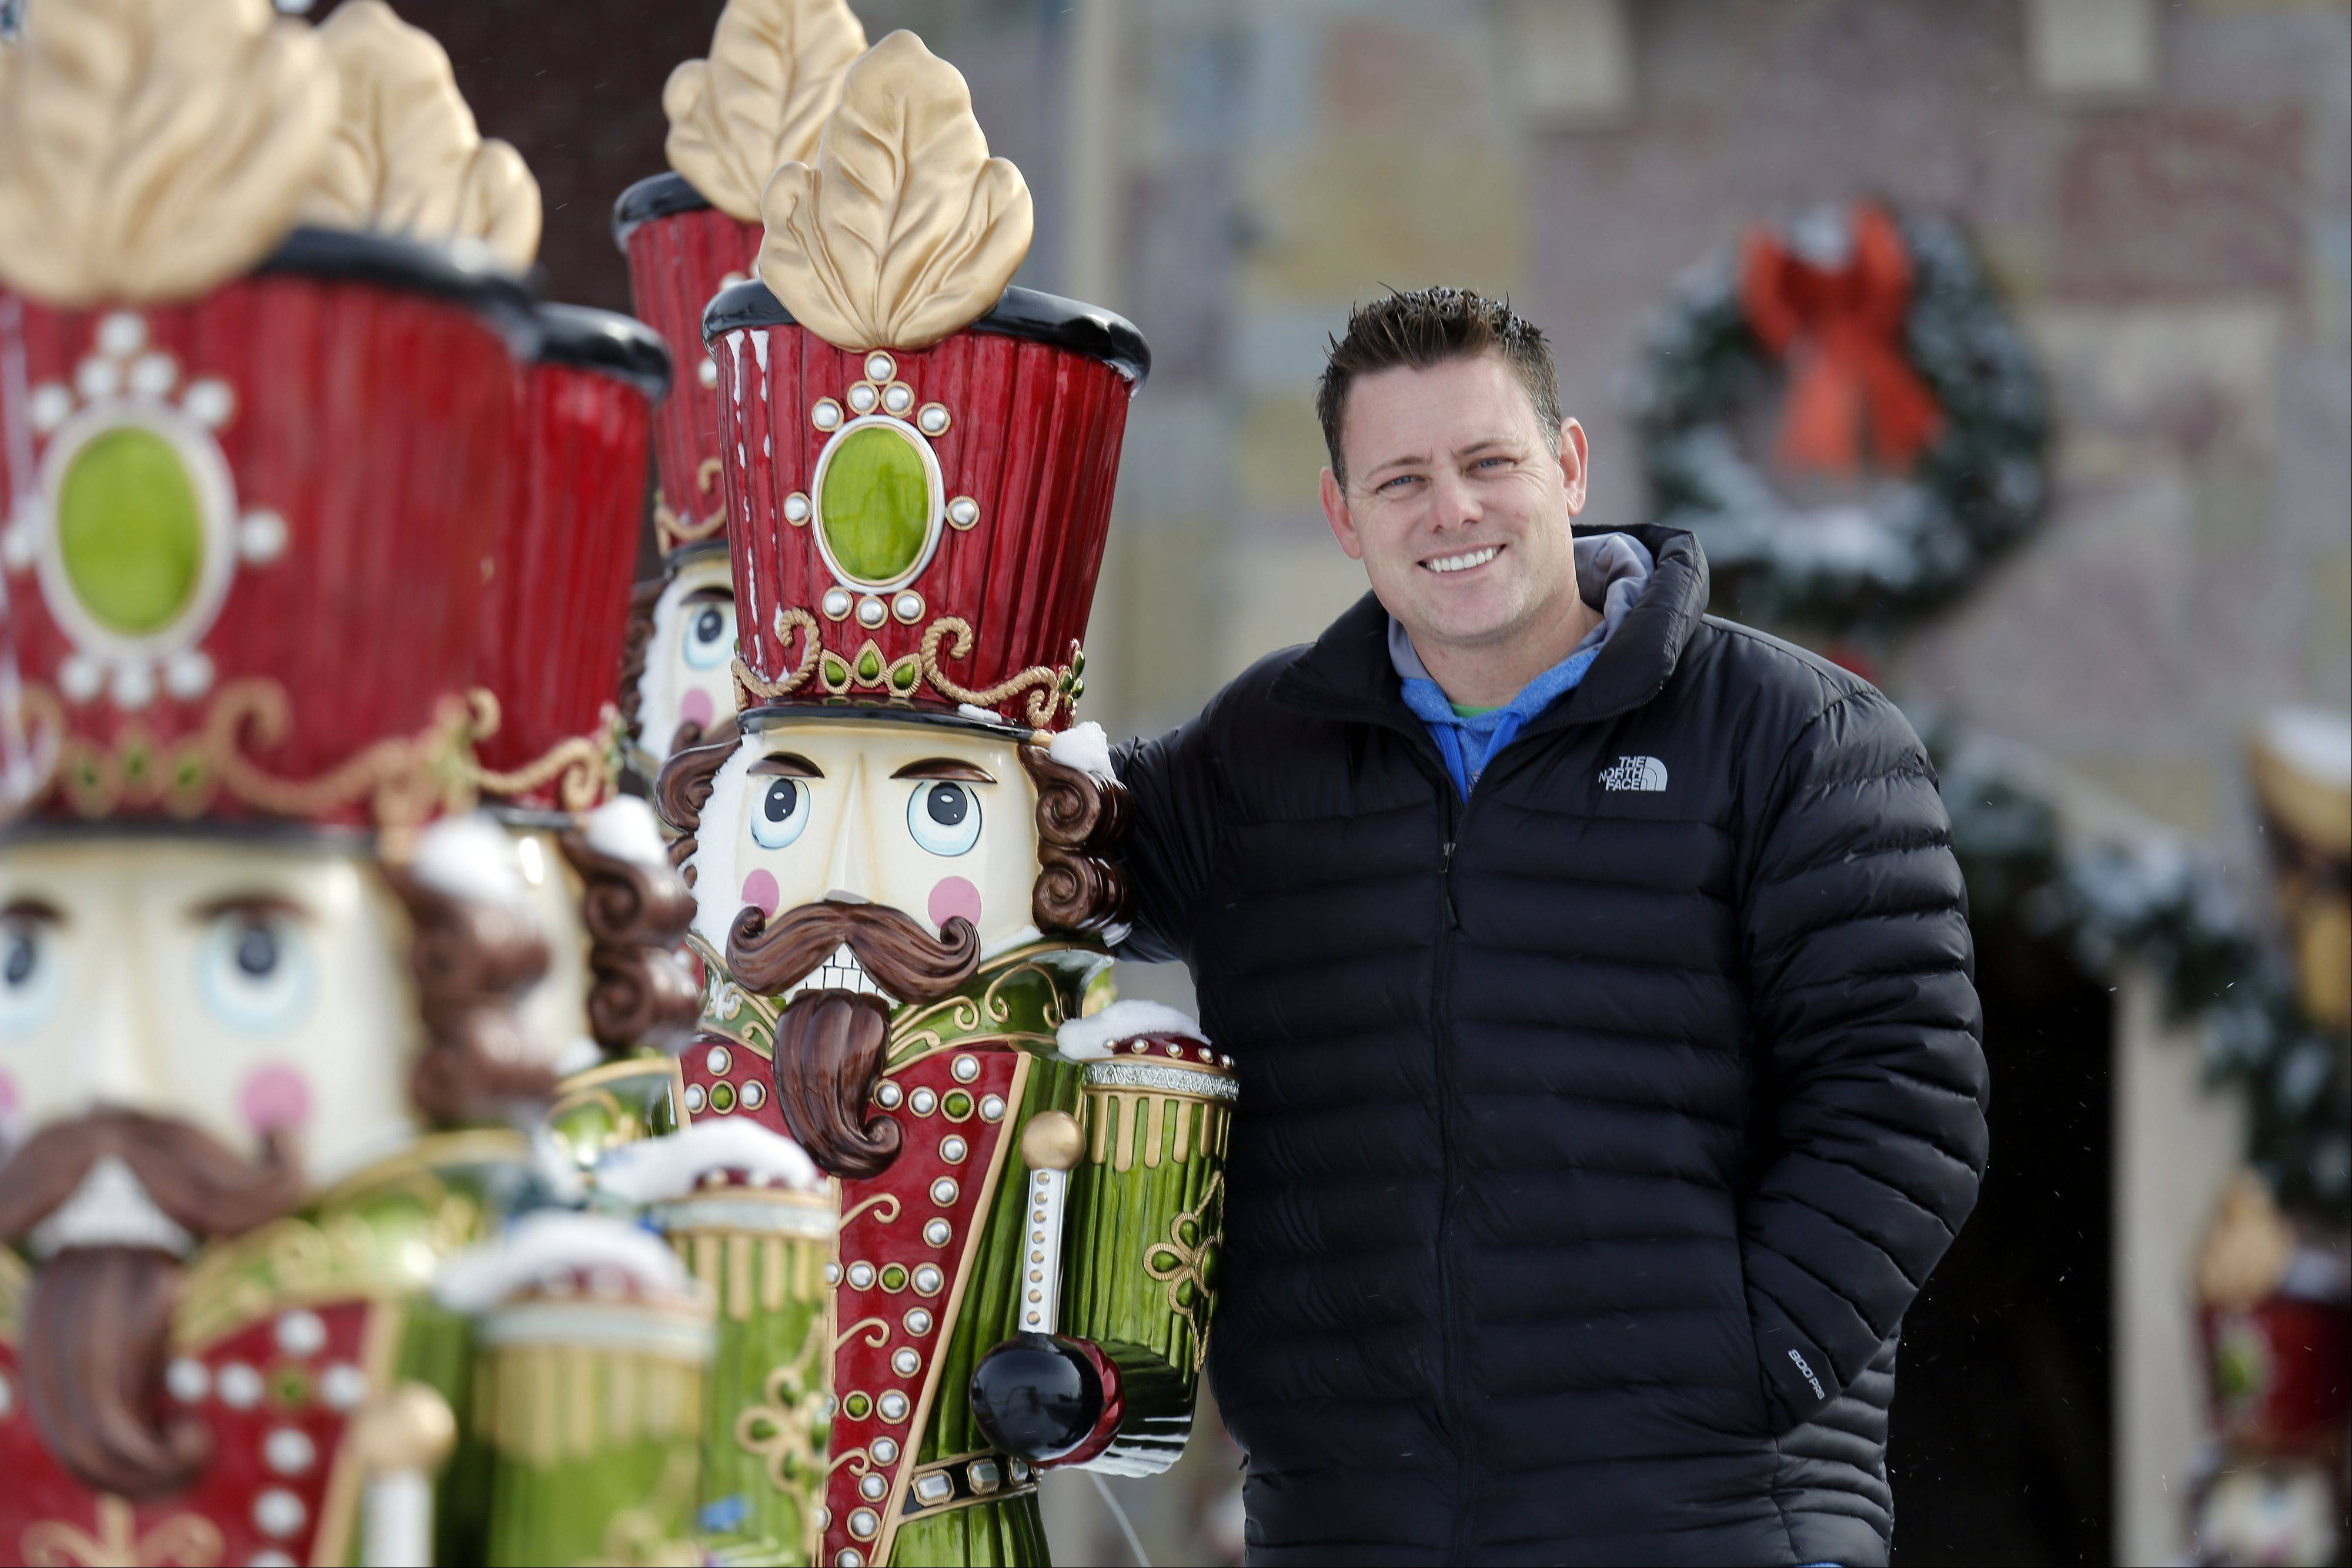 Brian Larsen of Elburn who recently won a reality show for his Christmas lights display was originally planning on taking down his lights this week. Instead, he's decided to extend the light show through this Sunday.